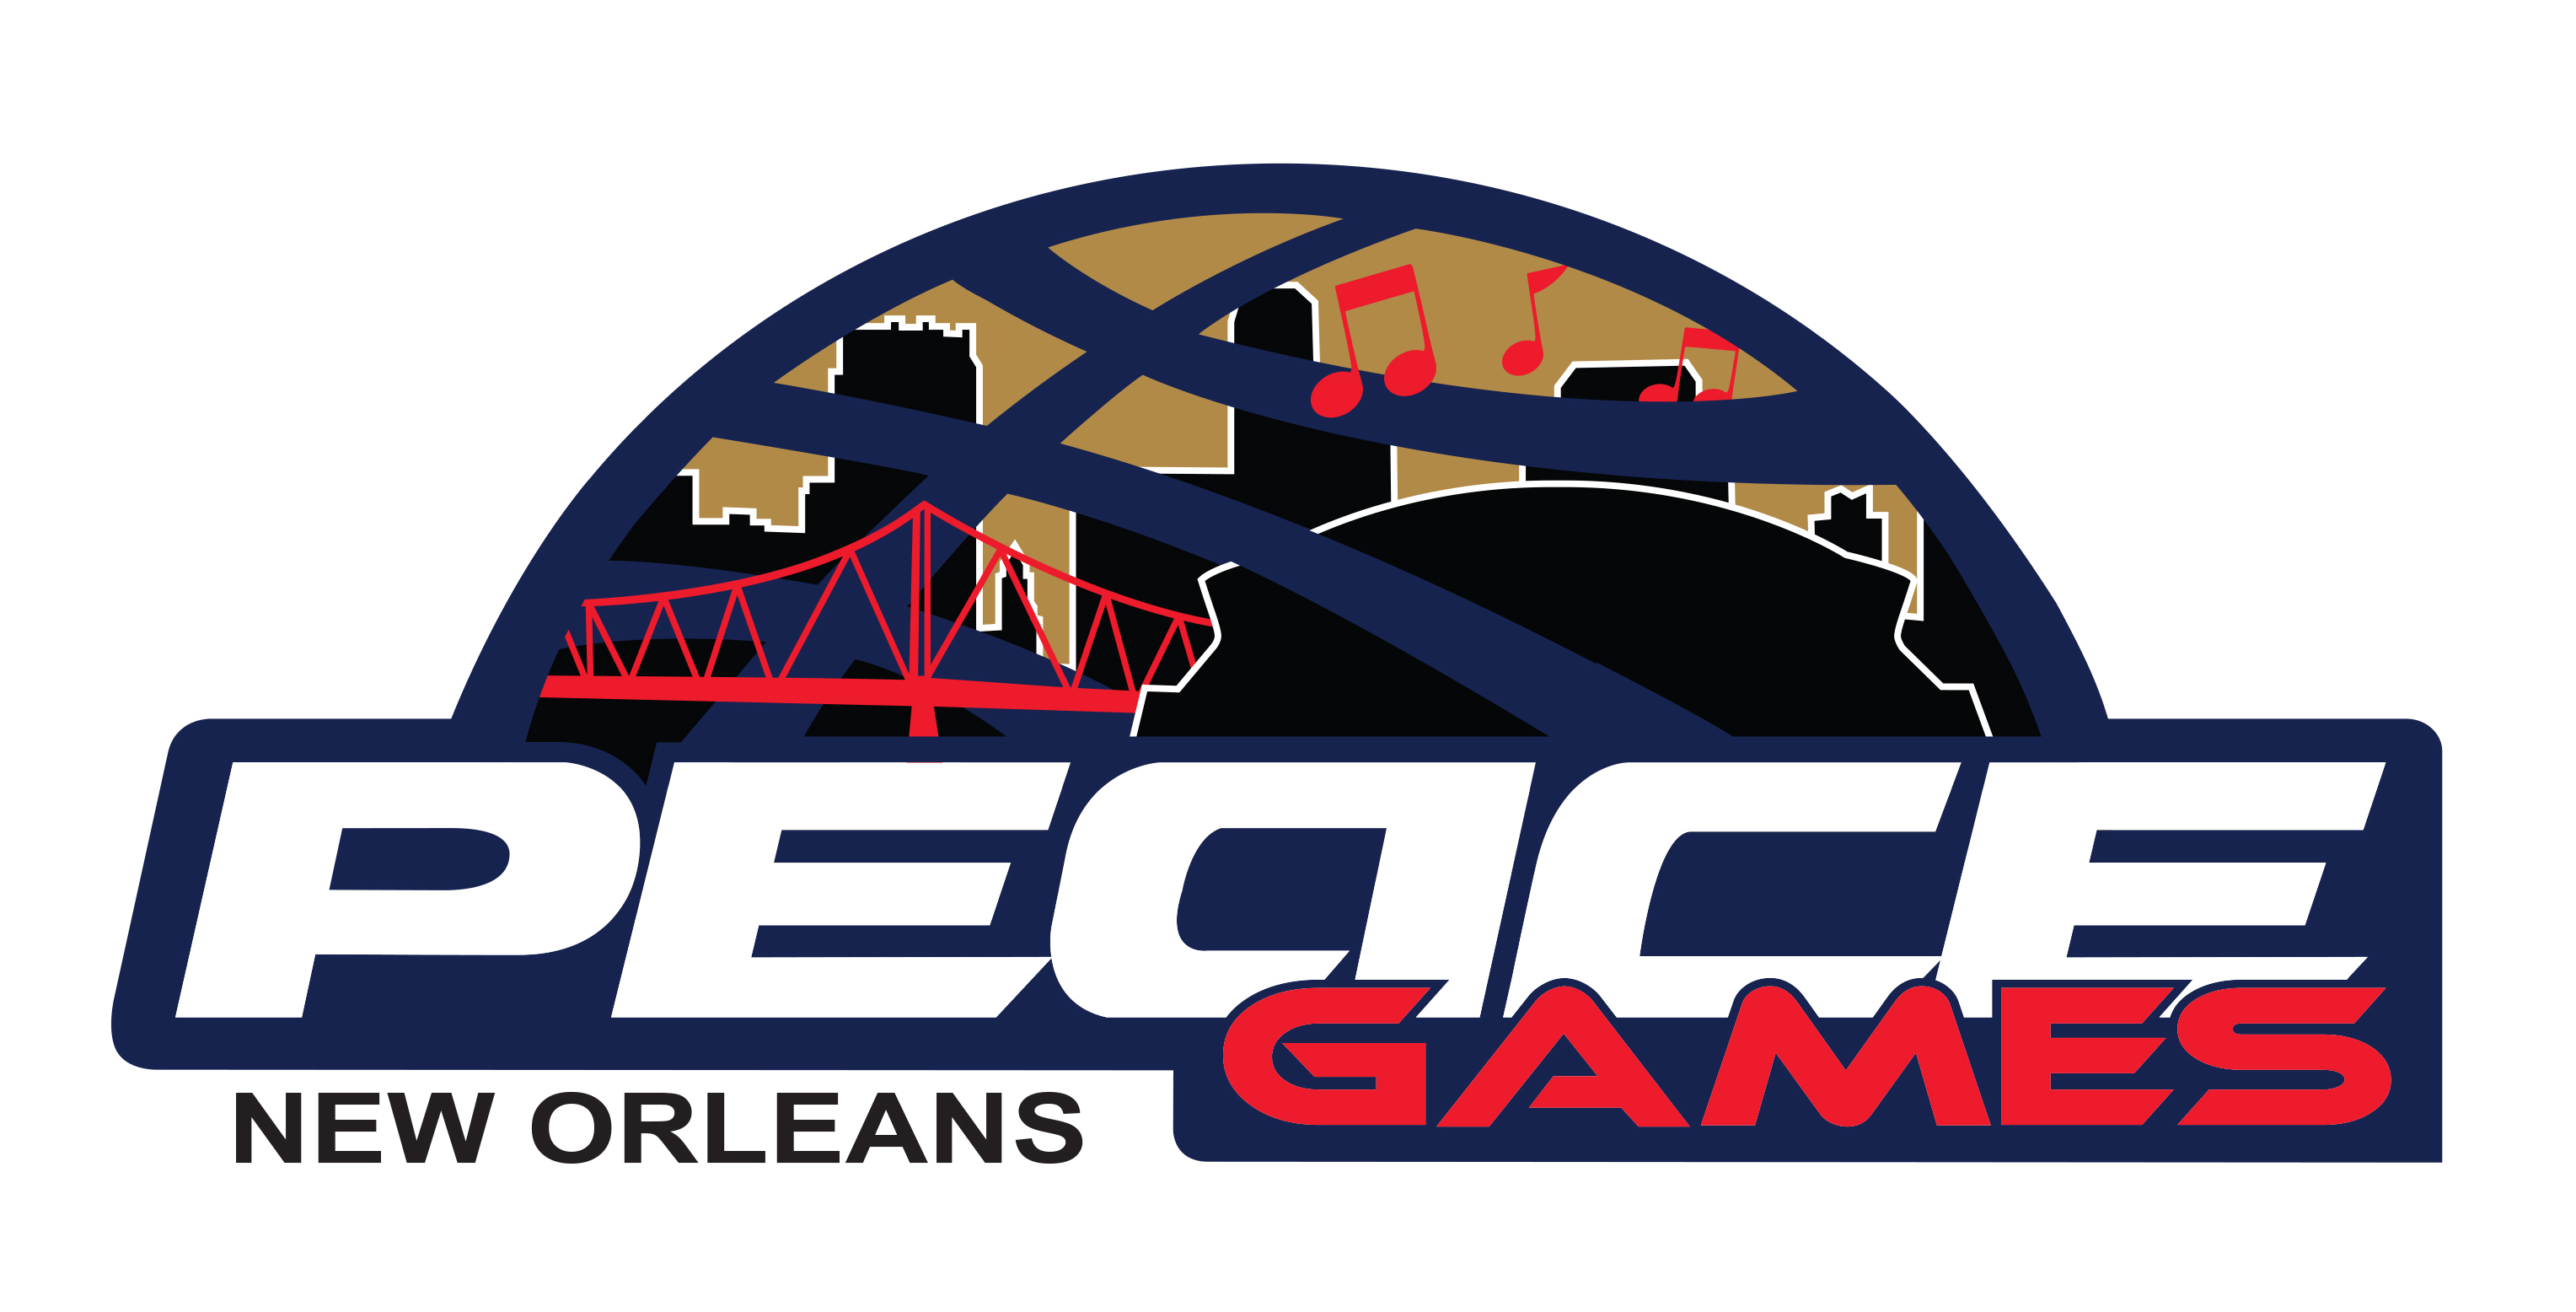 Connor Sports Cares: Connor Sports and New Orleans Community Partners to Host 2015 Youth Peace Summit and Basketball Tournament